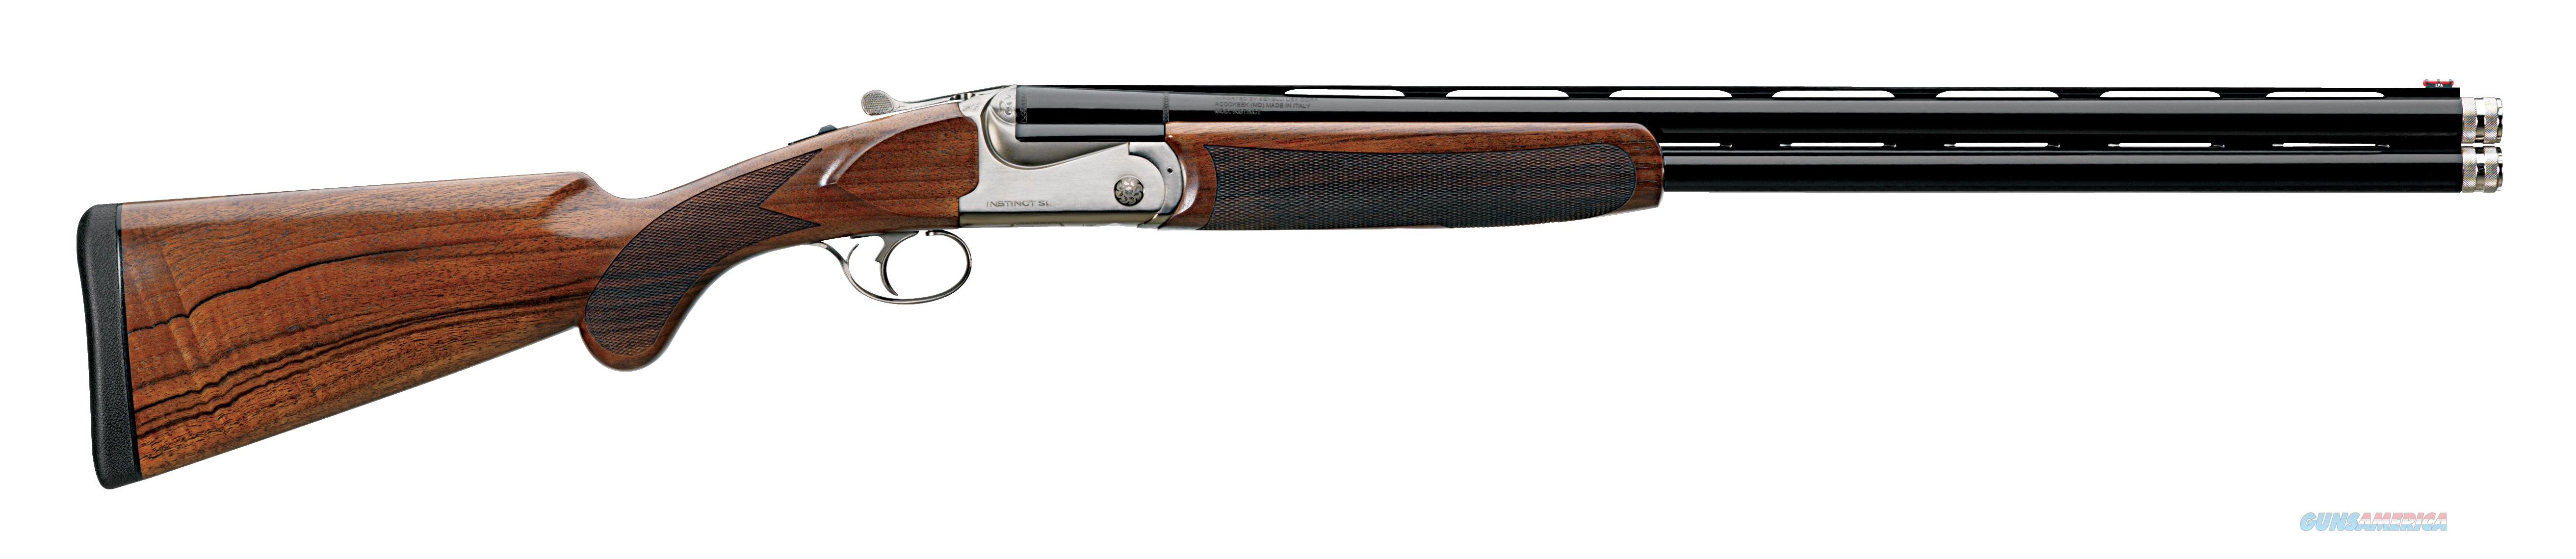 "FRANCHI INSTINCT SL 20GA 28"" Over/Under Shotgun #40825  Guns > Shotguns > Franchi Shotguns > Over/Under > Hunting"